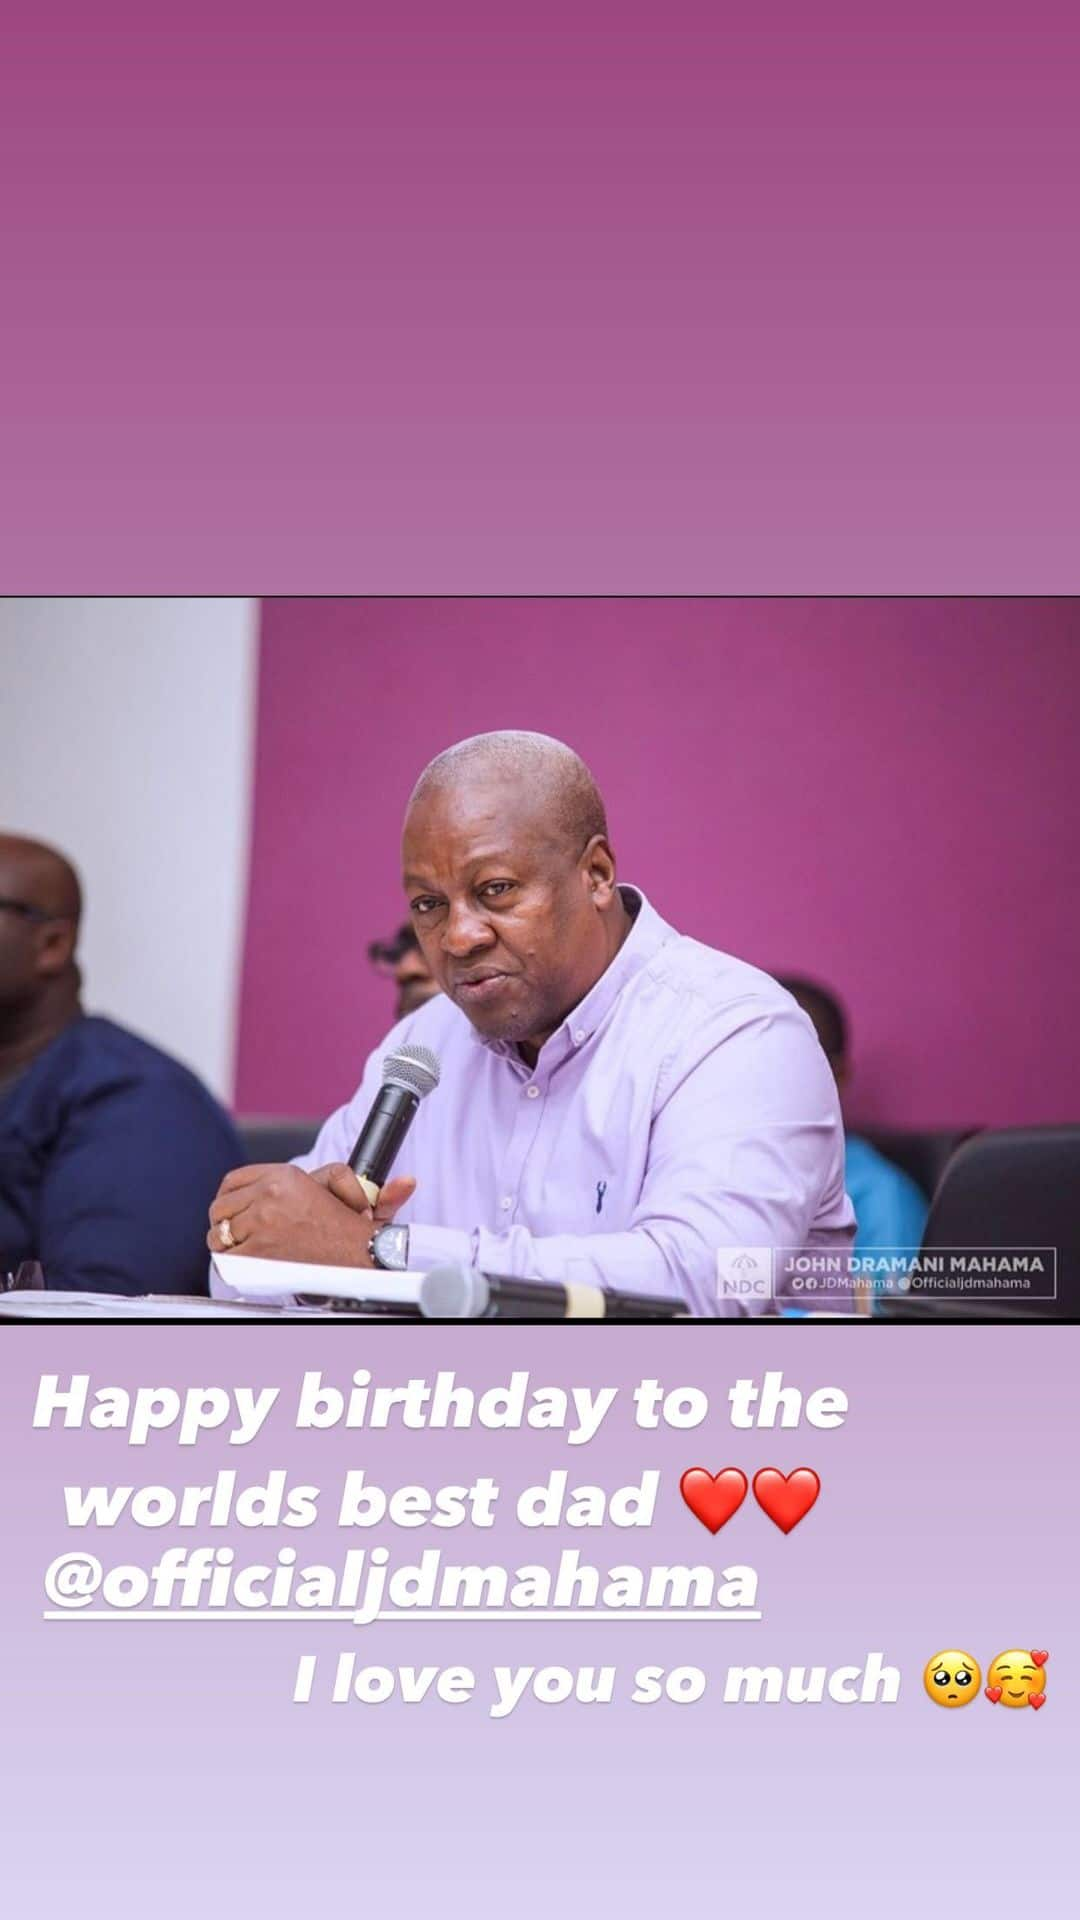 Mahama's 13-year-old daughter celebrates father's 62nd birthday with 4 lovely photos